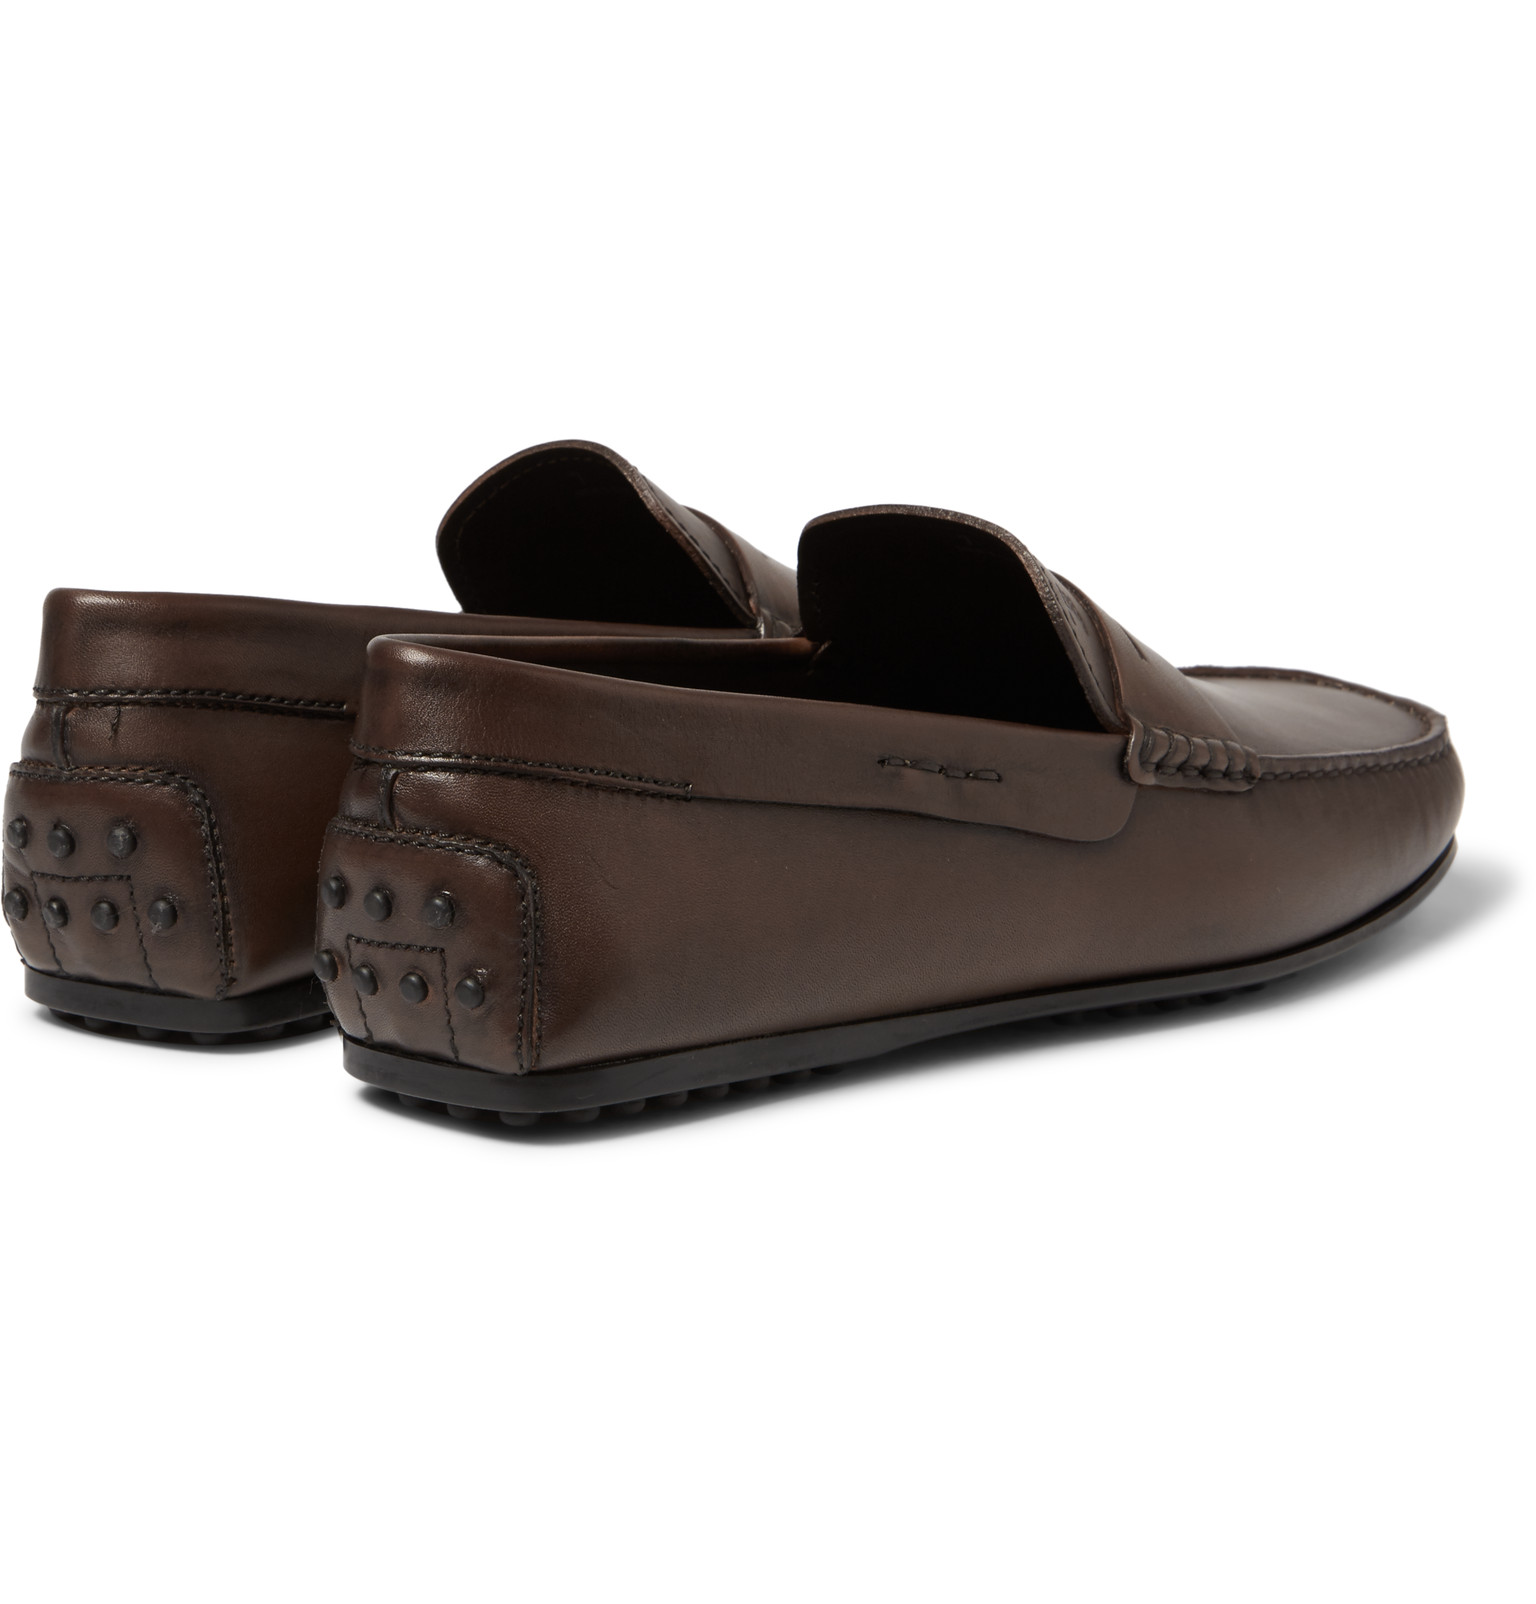 fcf4eecb3d4 Tod s - City Gommino Leather Penny Loafers